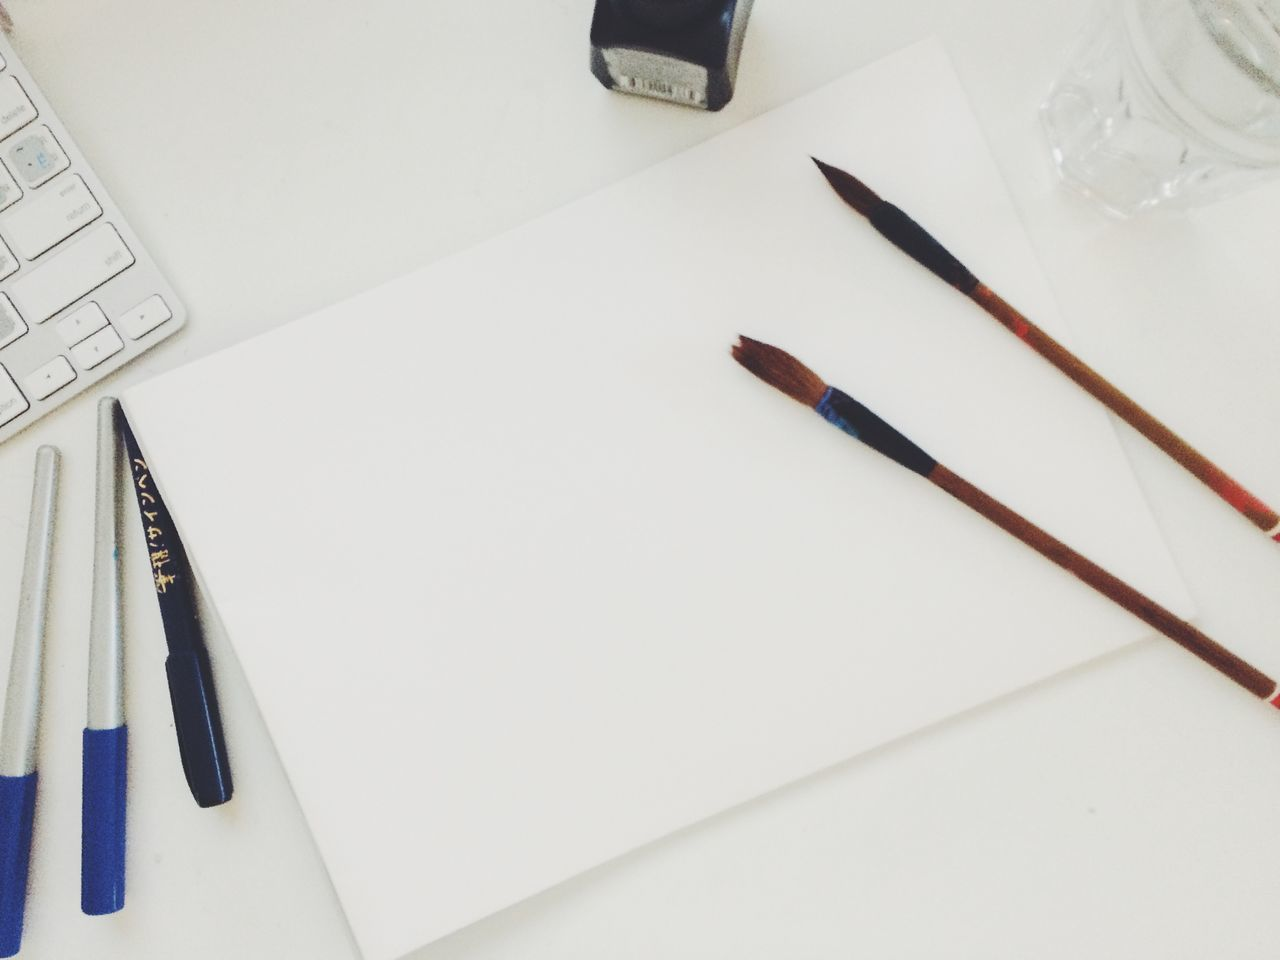 Brushes Canvas Close-up Day Desk Drawing - Art Product Education Empty Fountain Pen High Angle View Indoors  Mock Up Nib No People Office Office Supply Paper Pen Pencil Ruler Writing Instrument